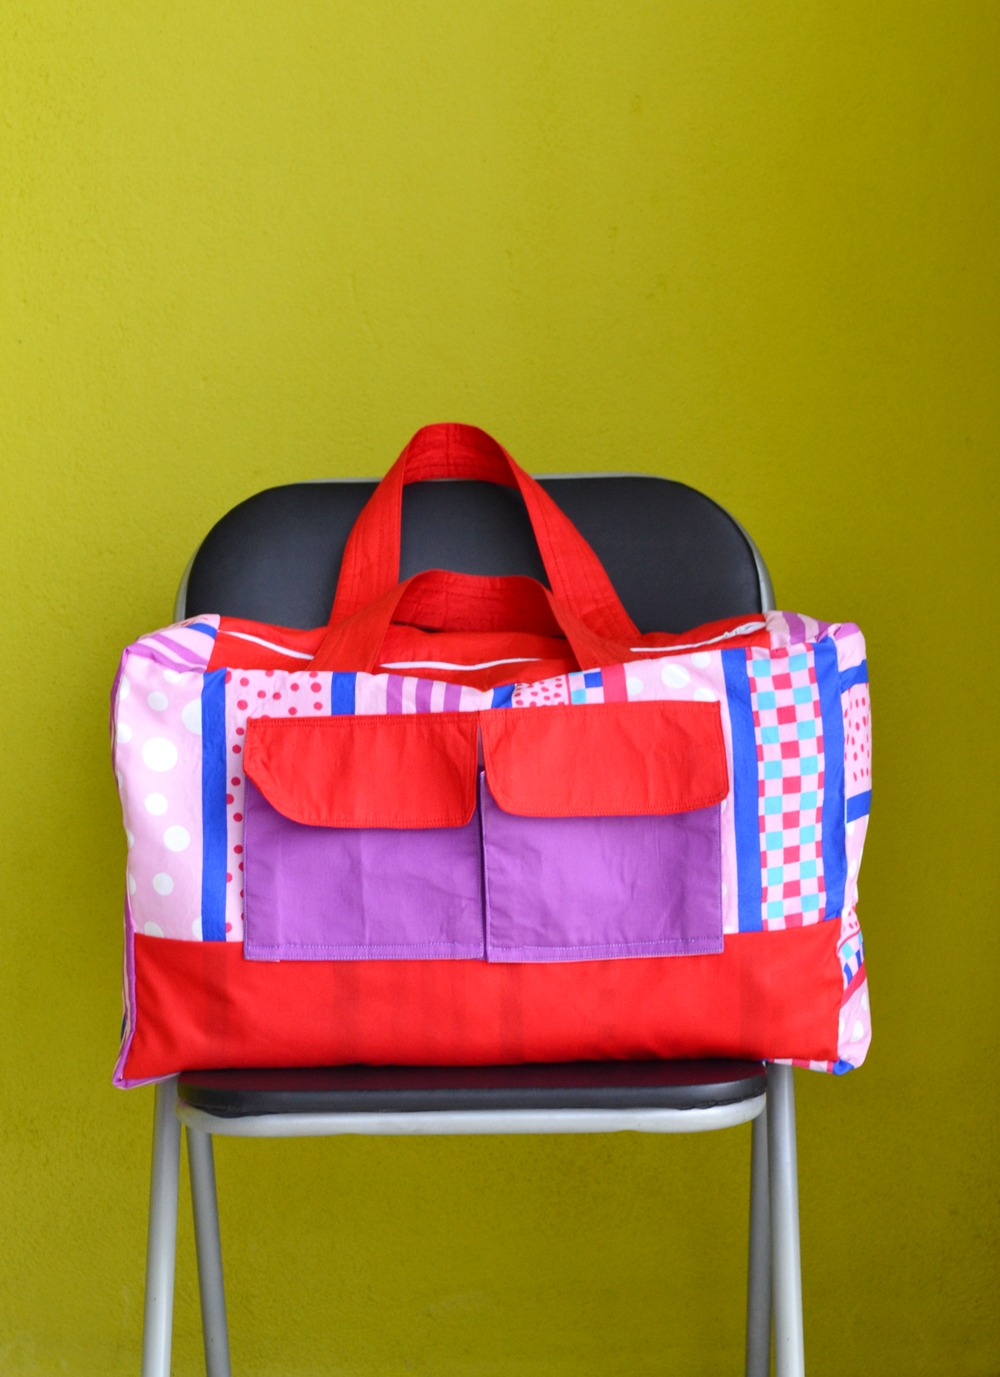 Duffle Bag from Pillow Cover (Free Sewing Pattern) on believeninspire.com